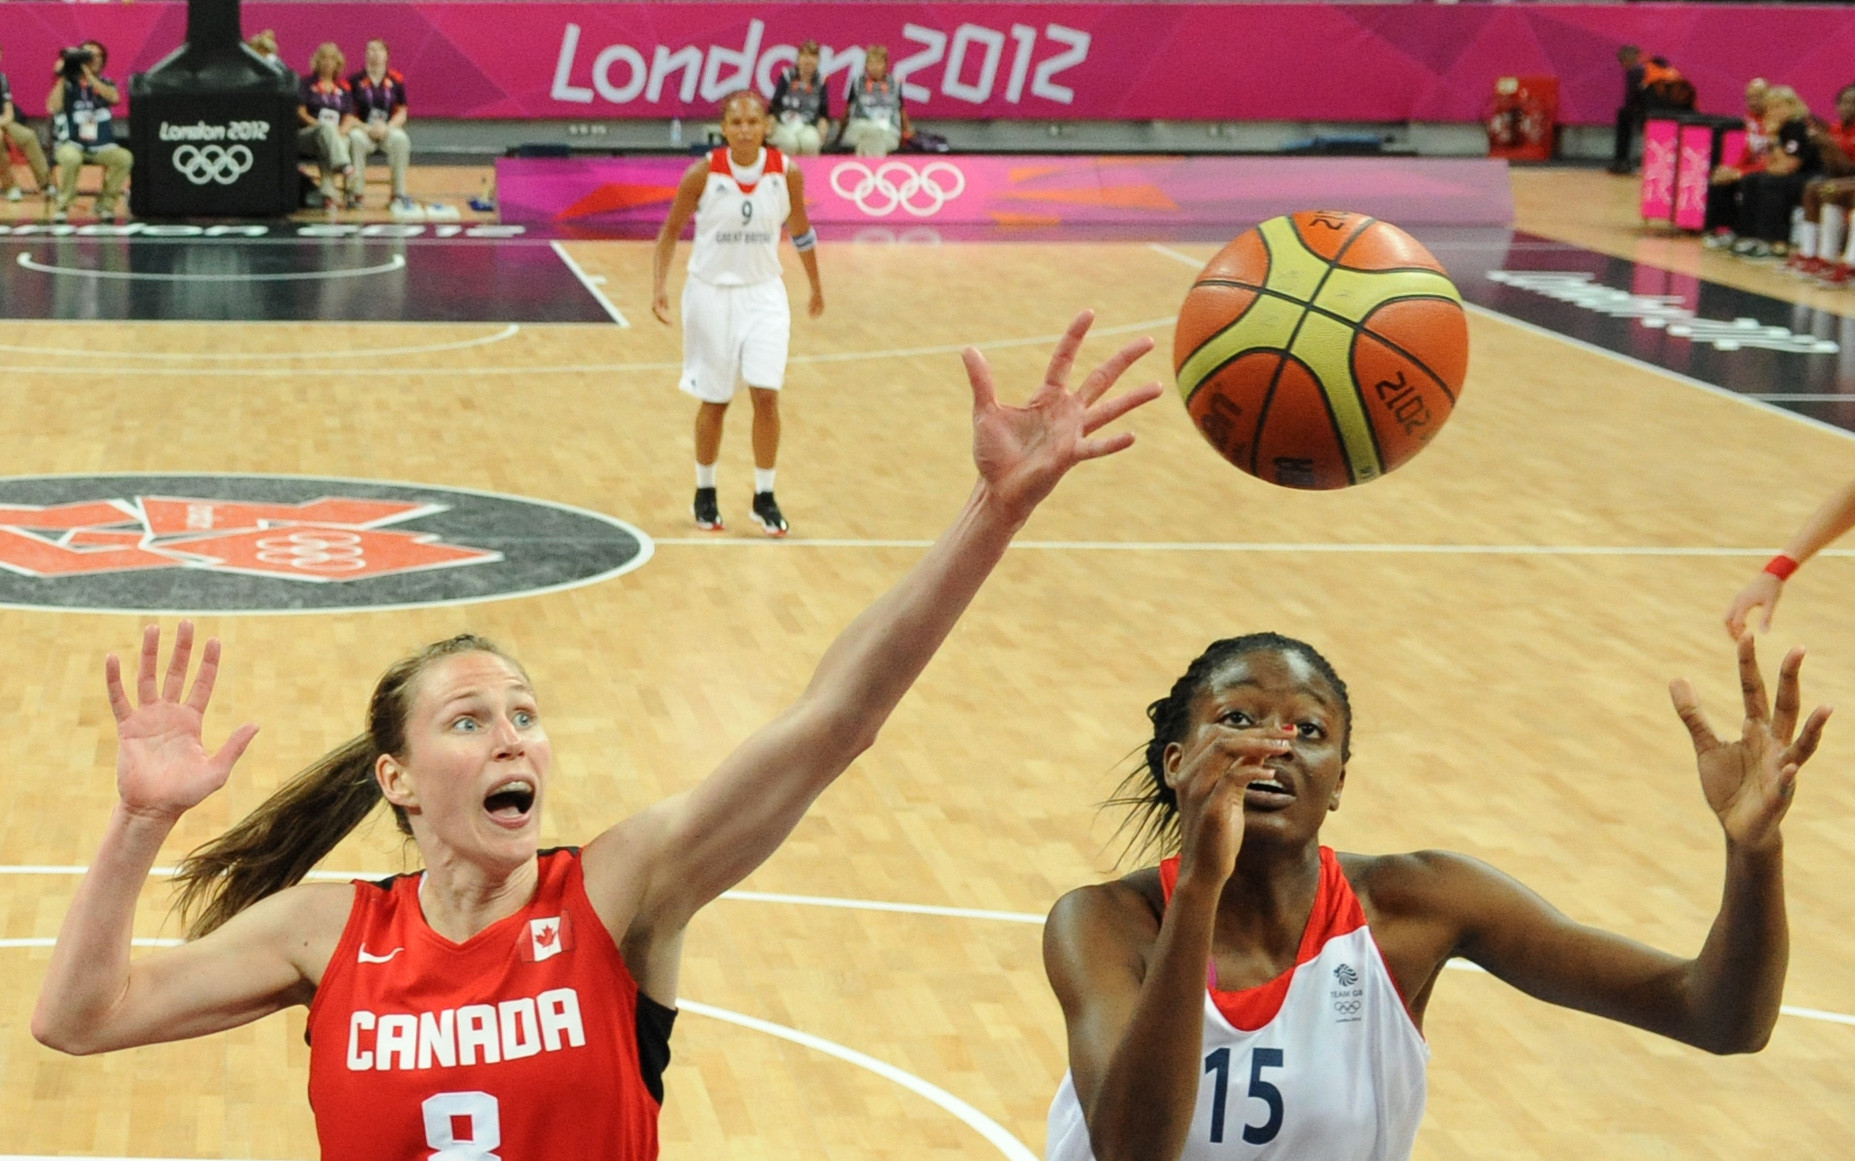 British basketball star upset Sport England and UK Sport favouring obscure Olympic sports